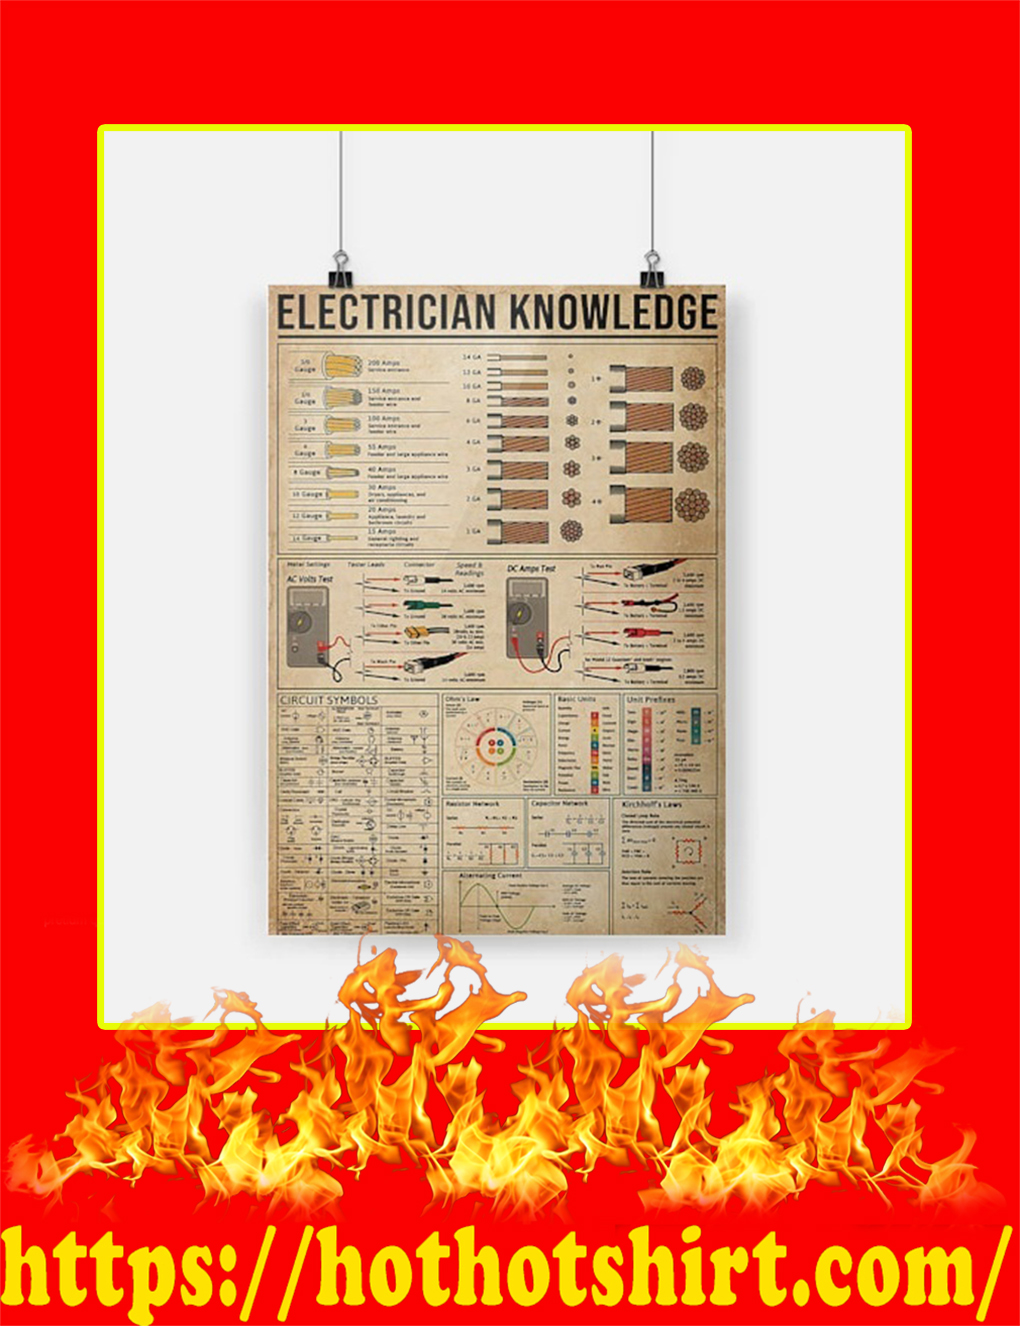 Electrician Knowledge Poster - A3